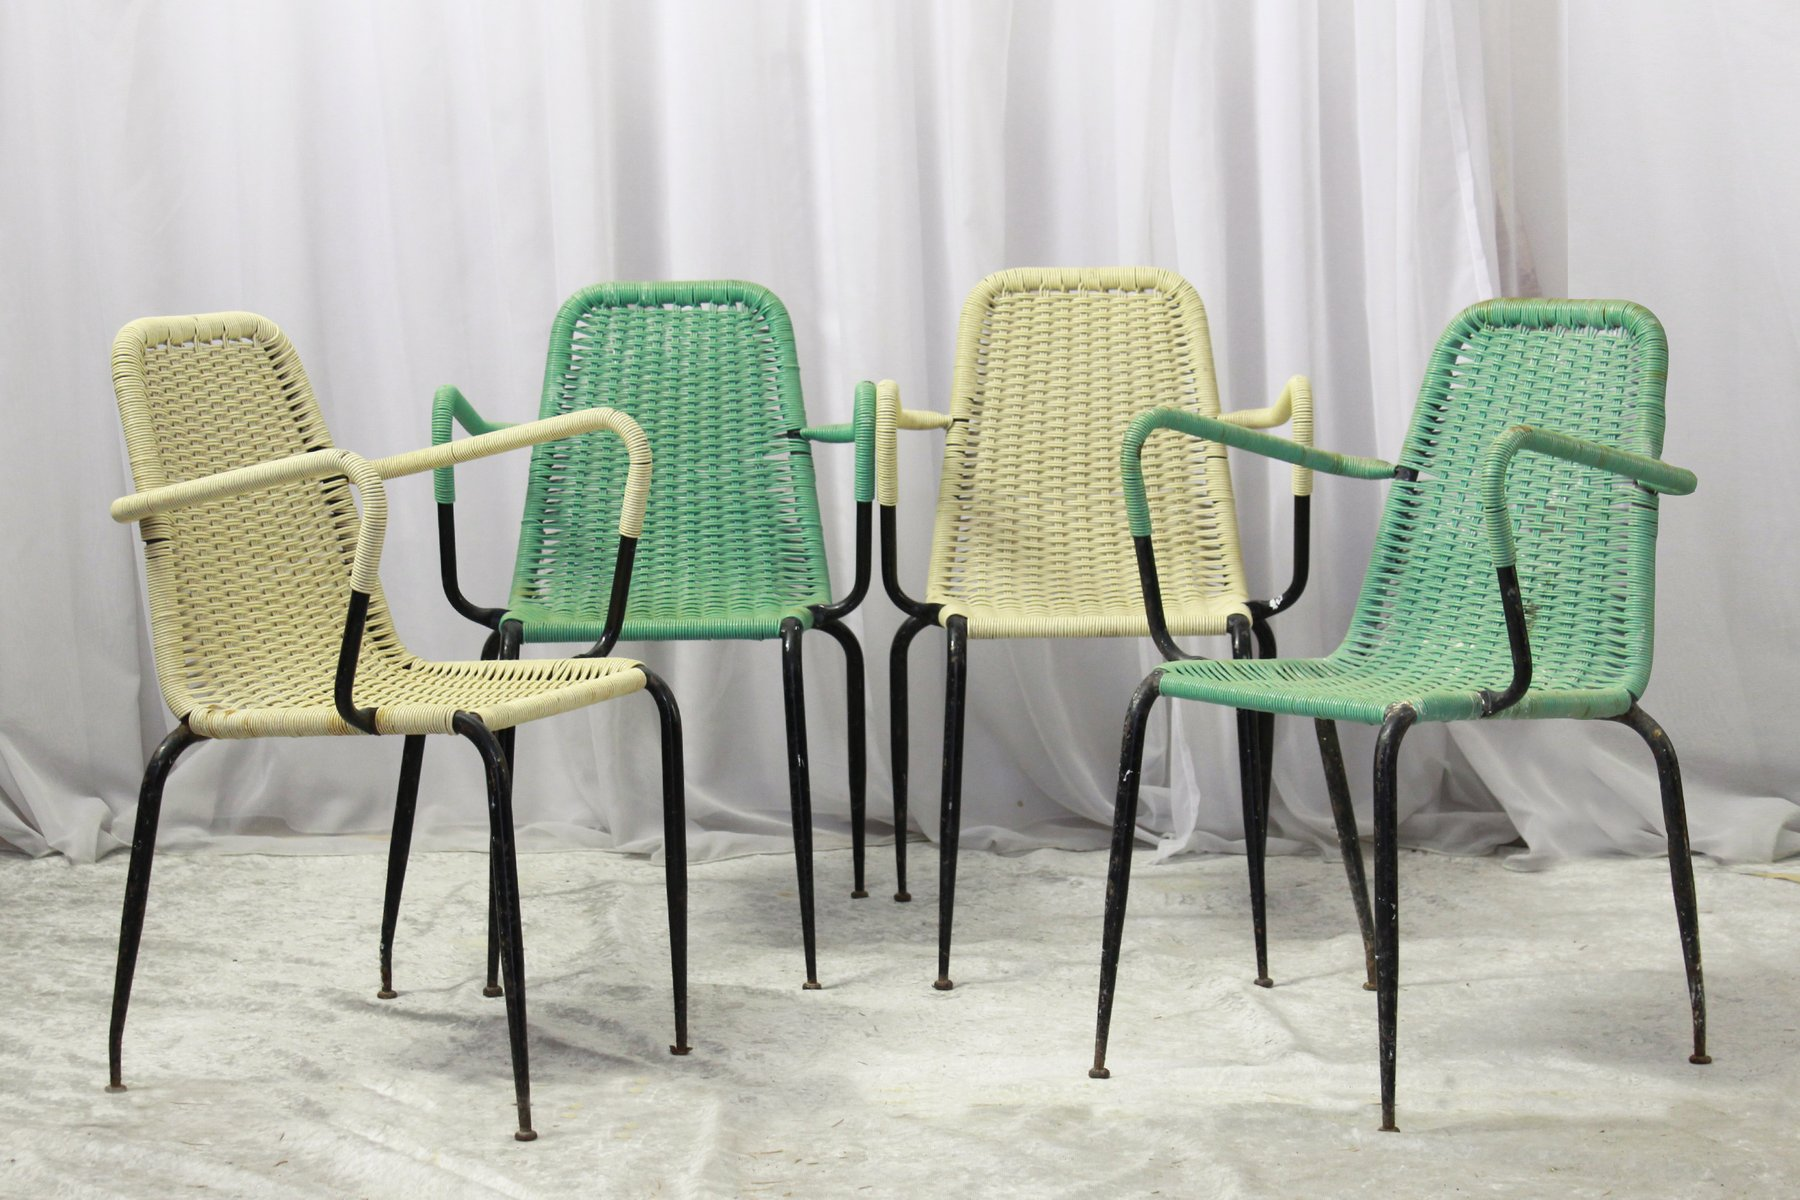 woven plastic garden chairs z line executive chair 2 1950s set of 4 for sale at pamono